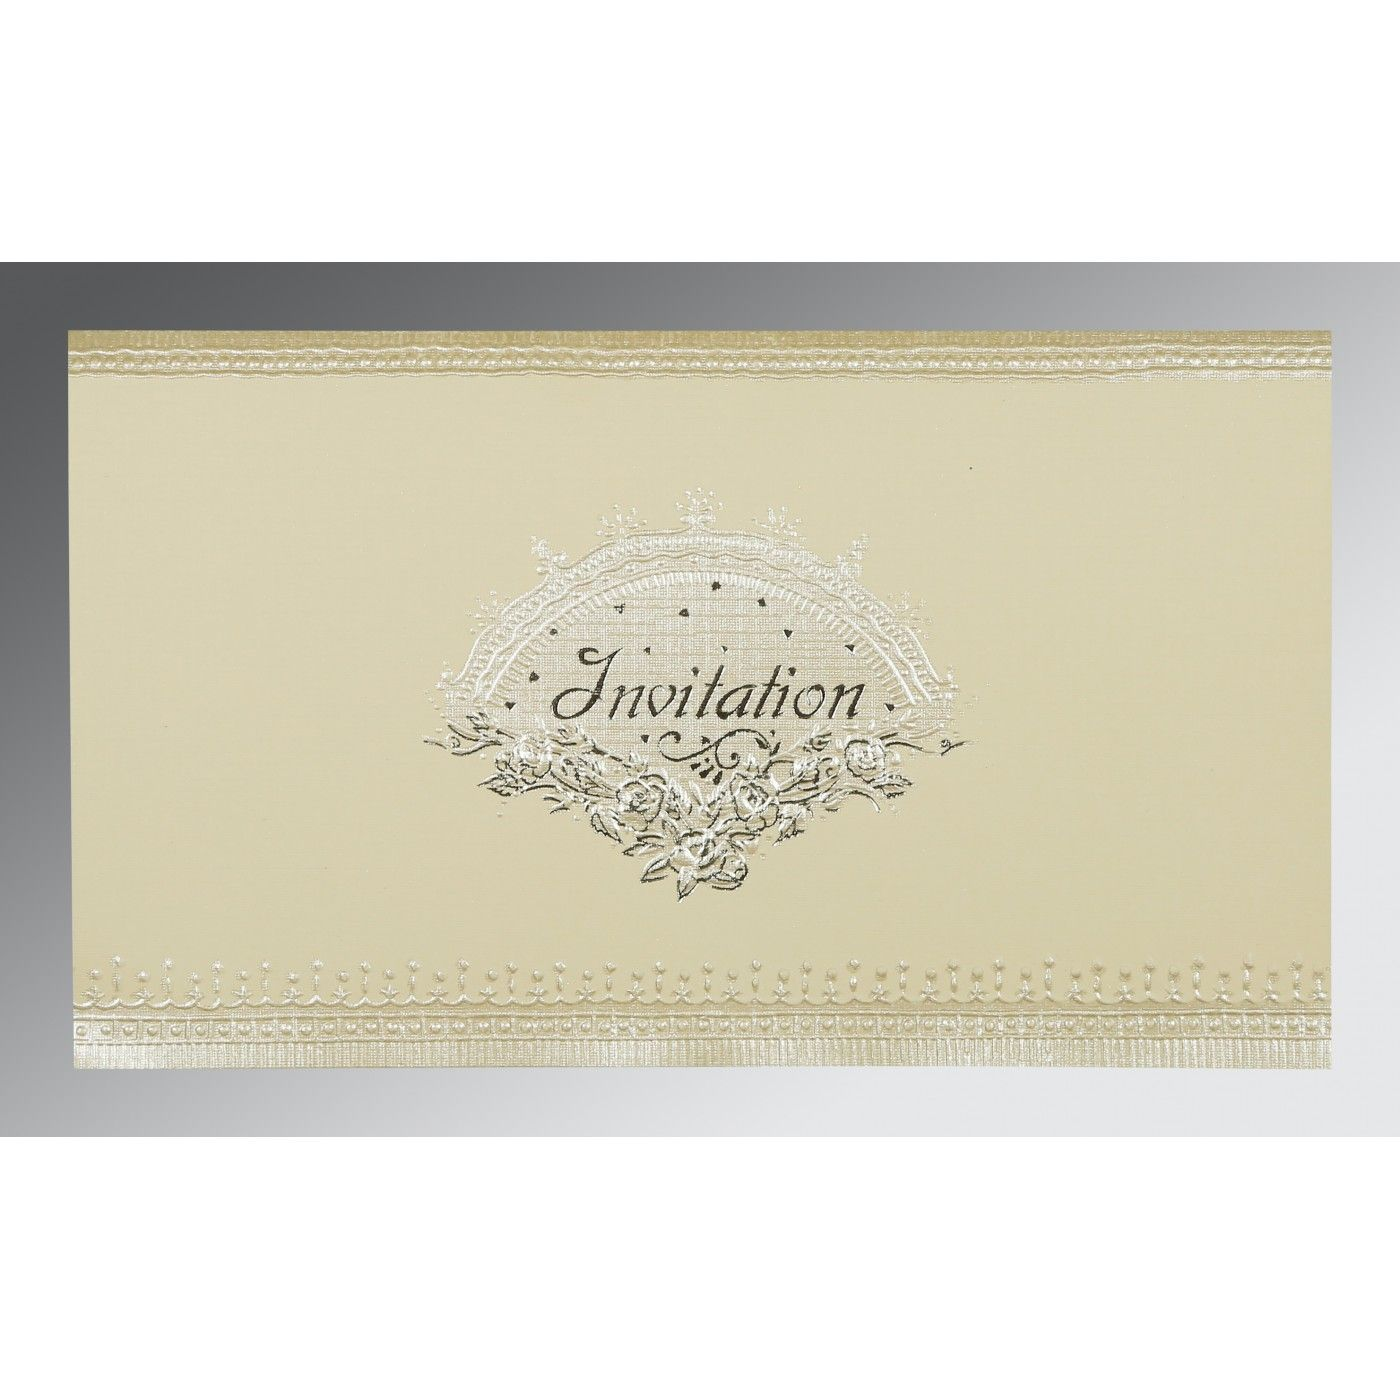 OFF-WHITE MATTE FOIL STAMPED WEDDING INVITATION : CG-1338 - IndianWeddingCards